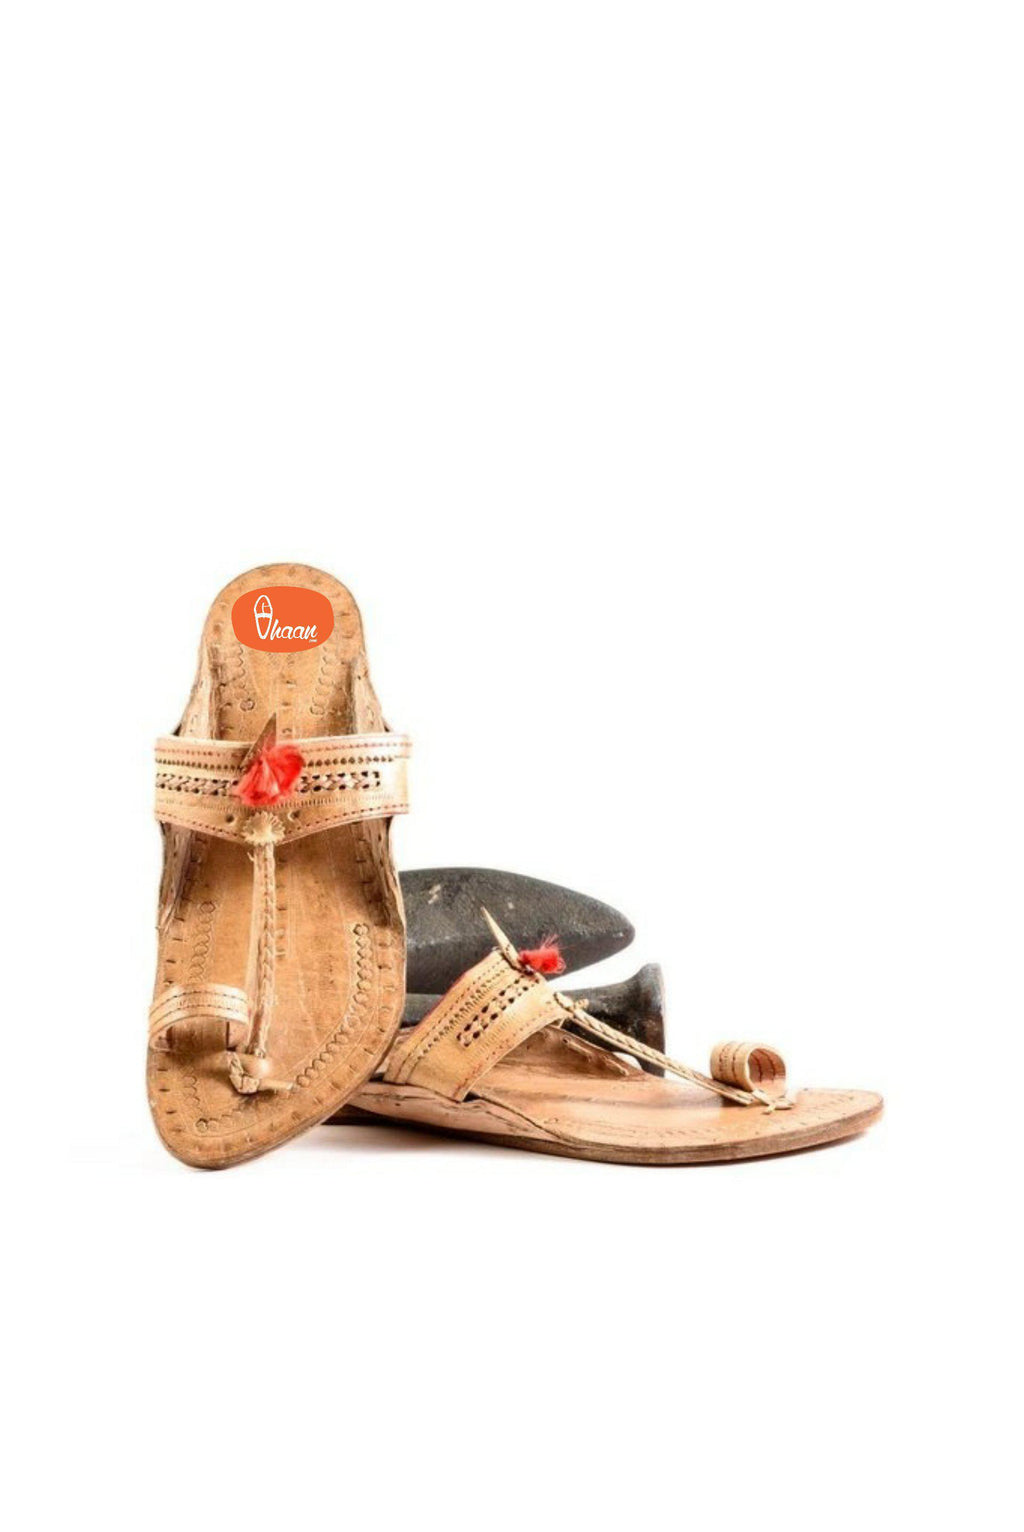 Purely Crafted Senapati Shape Red Gonda 4 Veni Belt Handcrafted Kolhapuri chappal for women-vhaanfootwear-5-vhaanfootwear